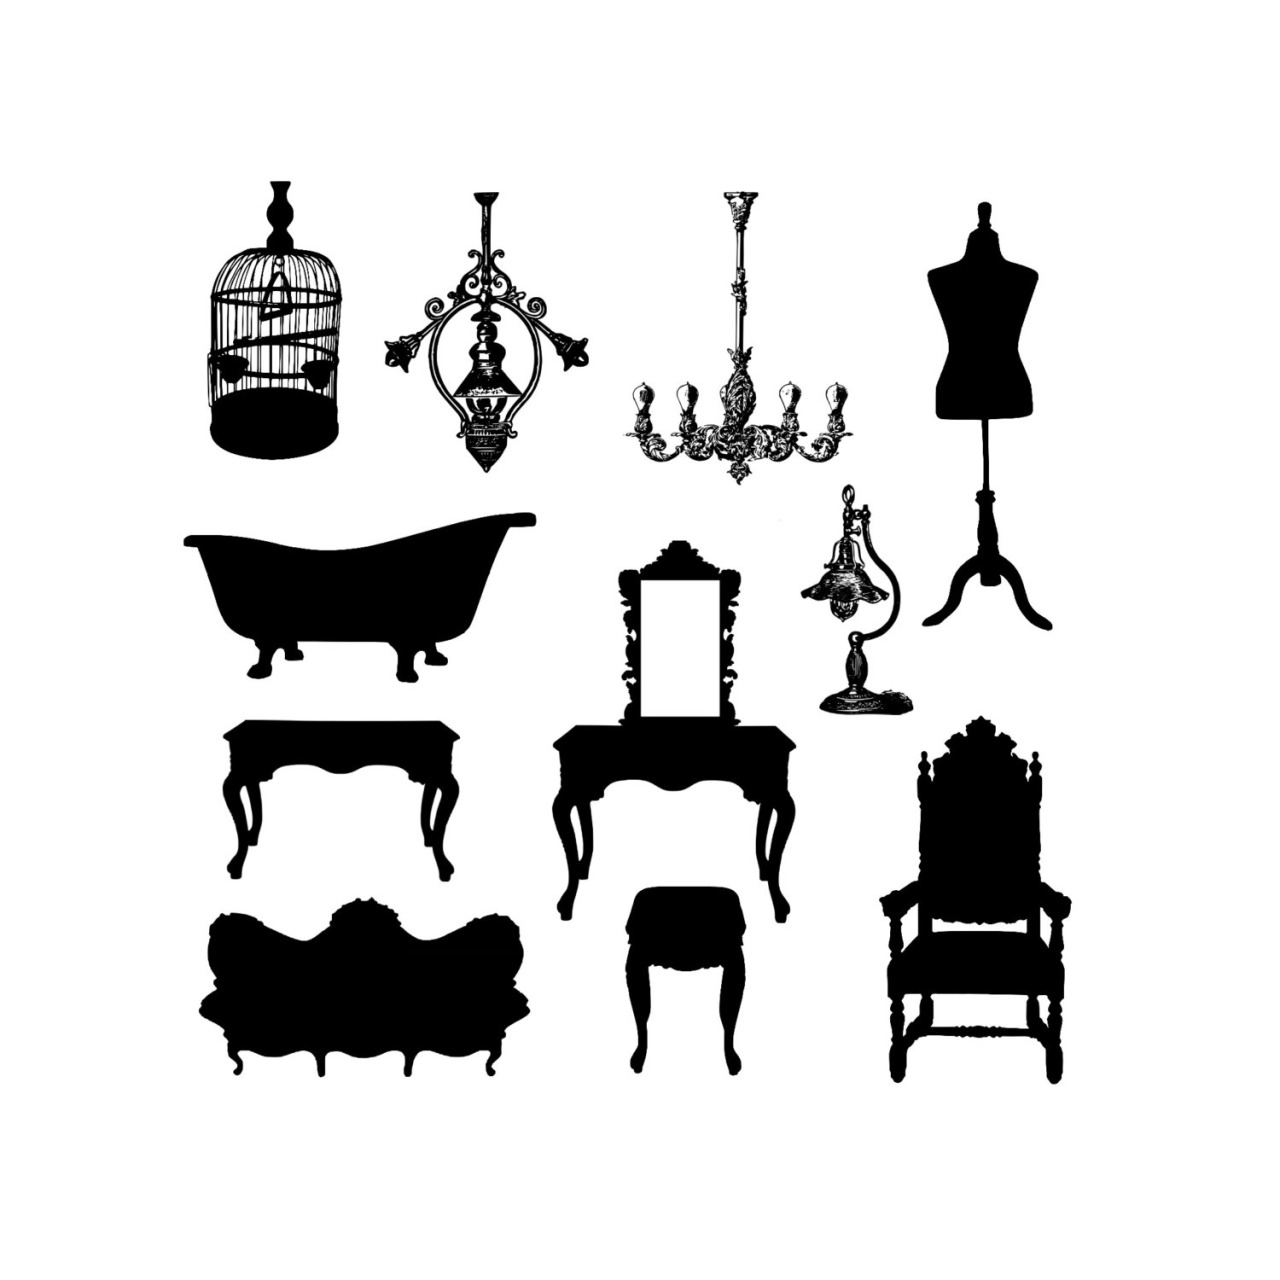 Chandelier clipart modern  Antique Download Download Fancy